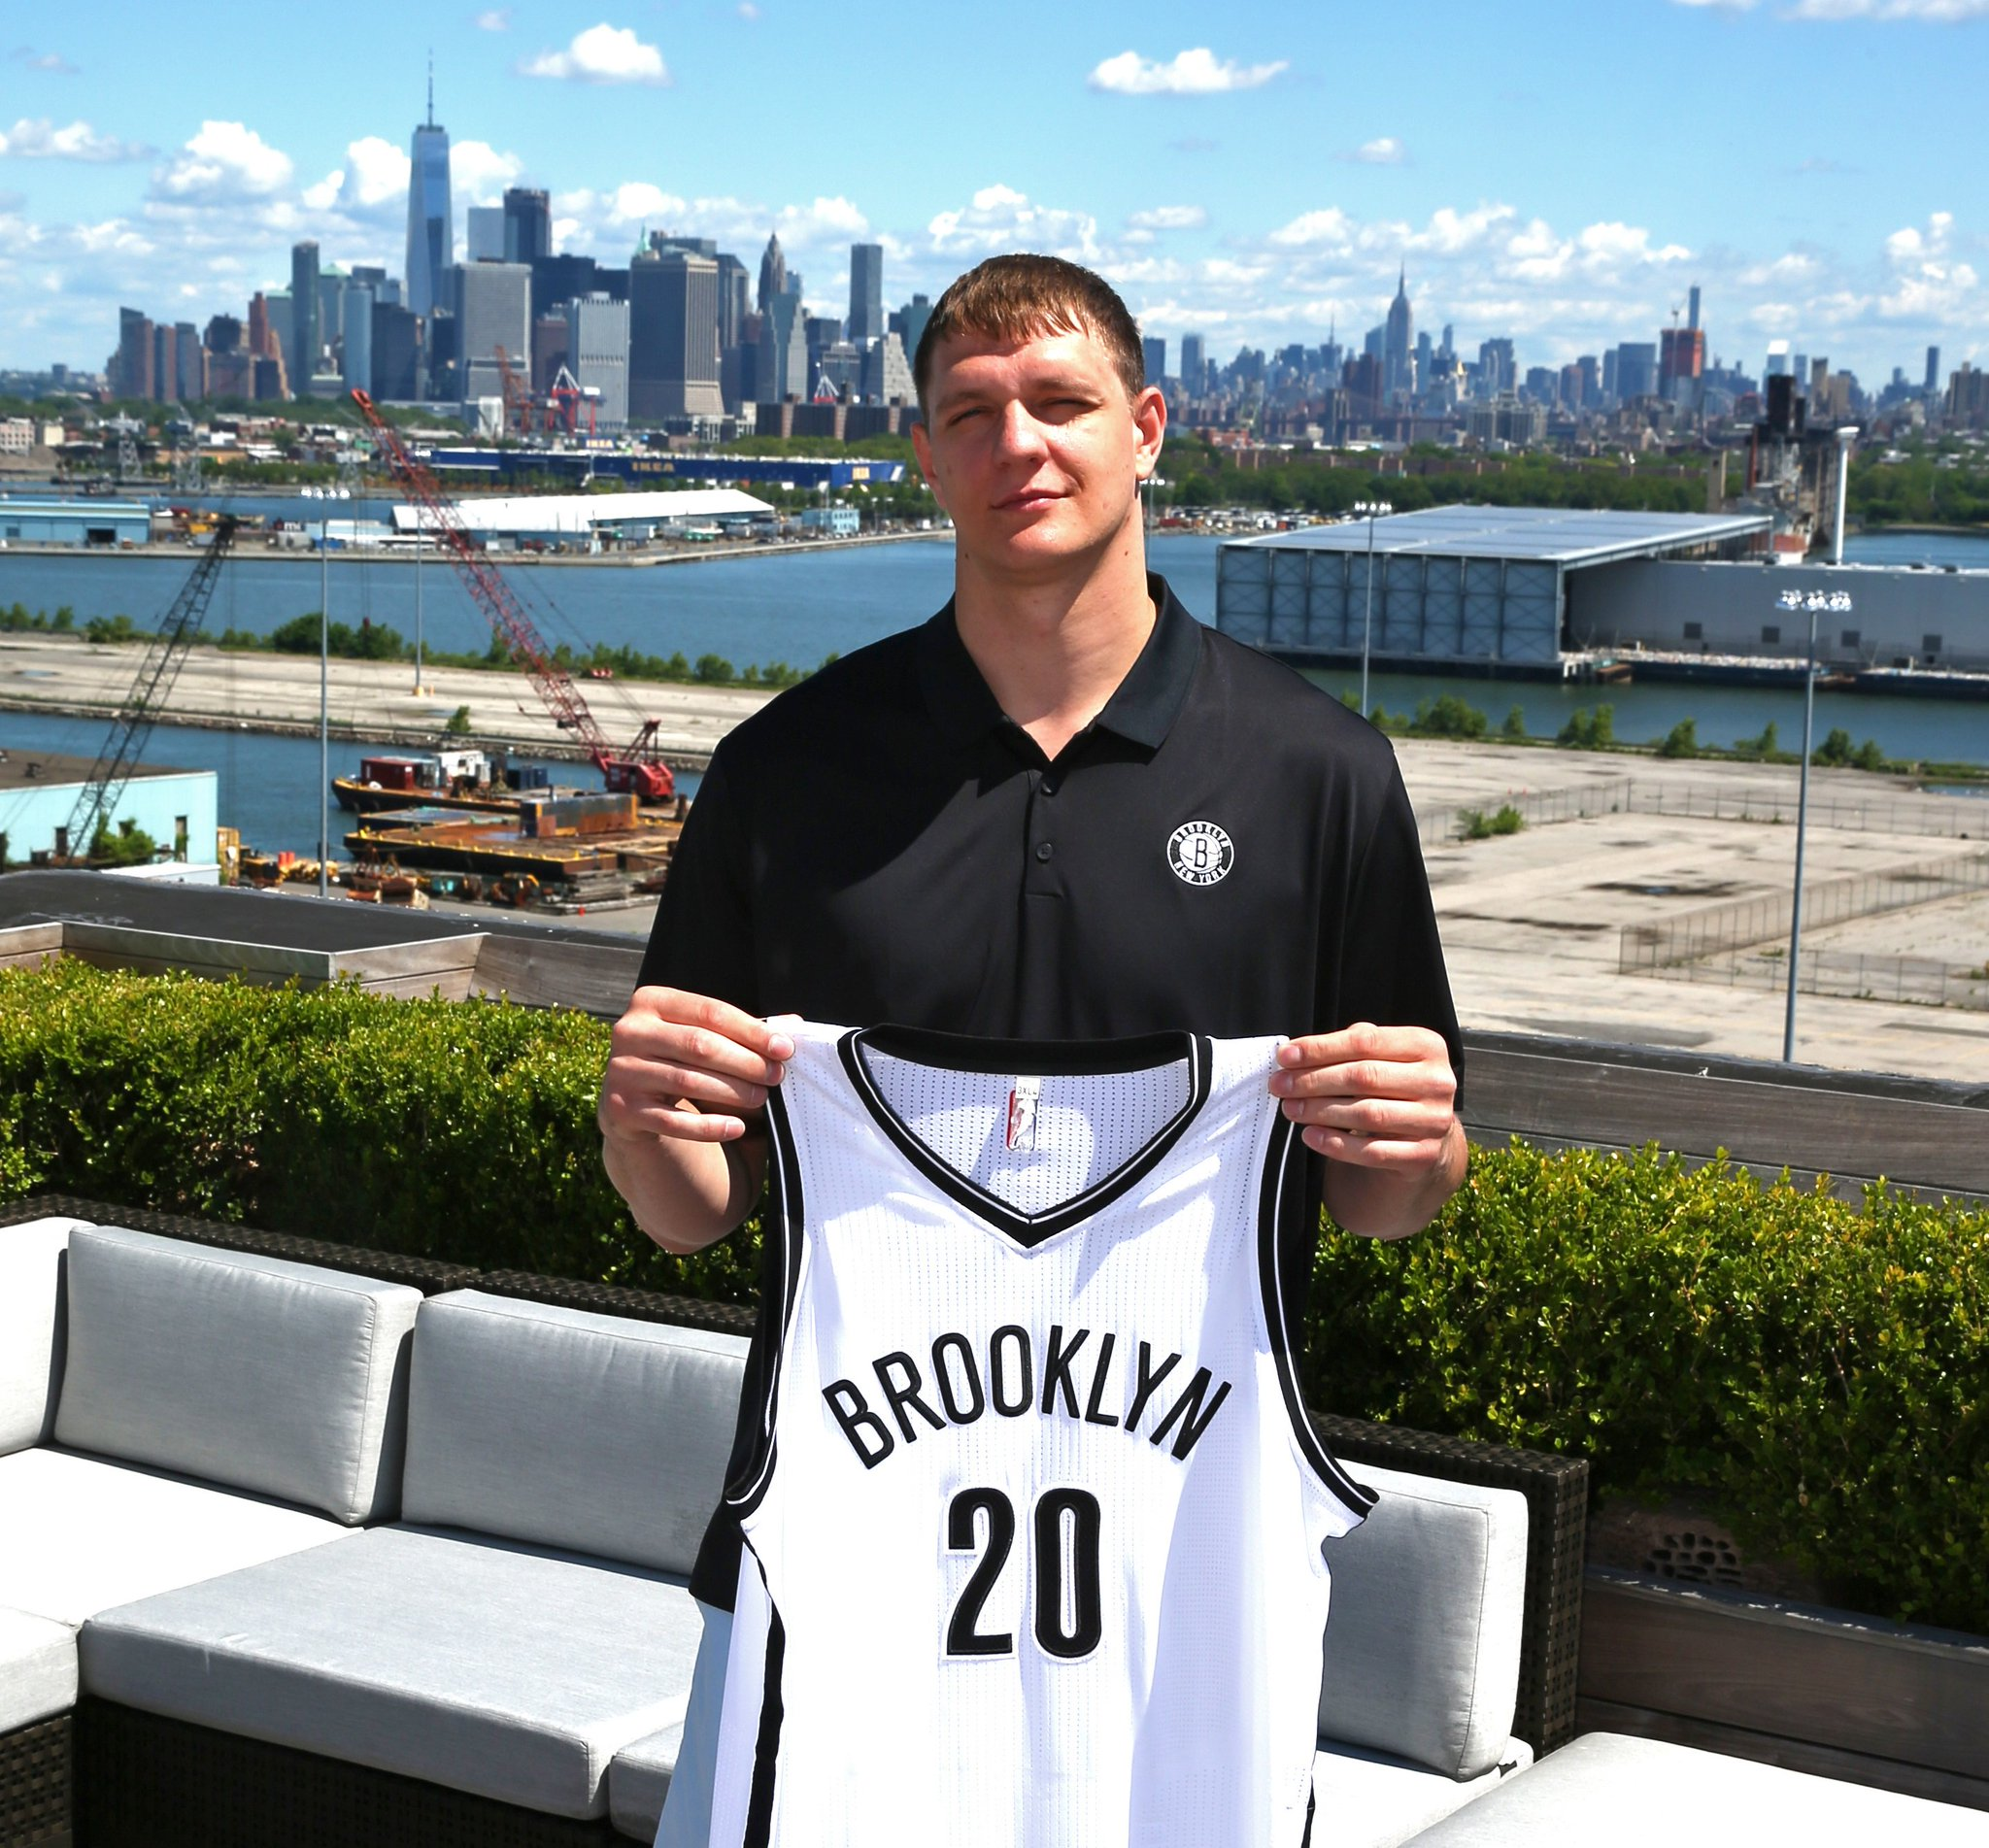 Join us in wishing Timofey Mozgov of the @BrooklynNets a HAPPY 31st BIRTHDAY! #NBABDAY https://t.co/o715utY4fG